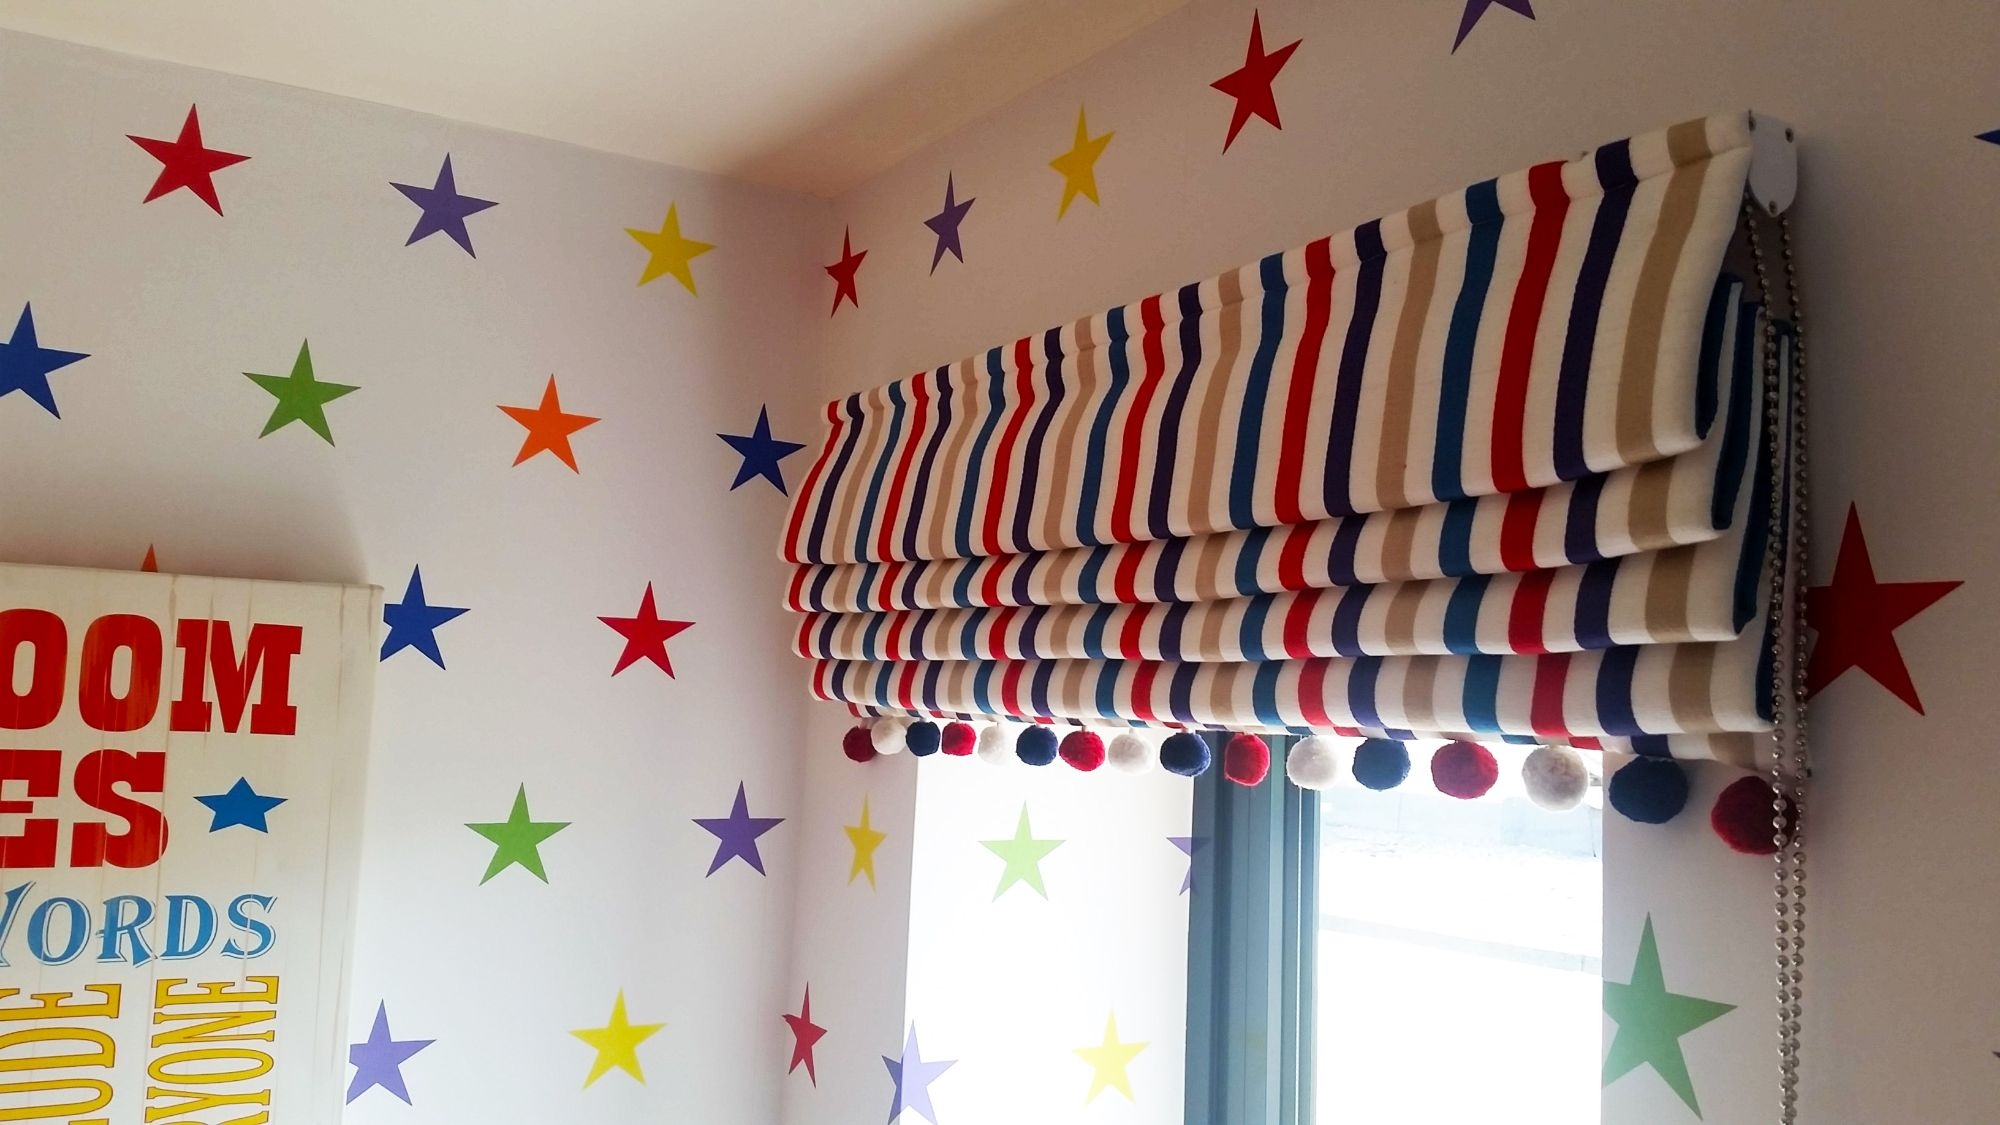 Cotton moon design specialised in interior design for - Roman shades for kids room ...